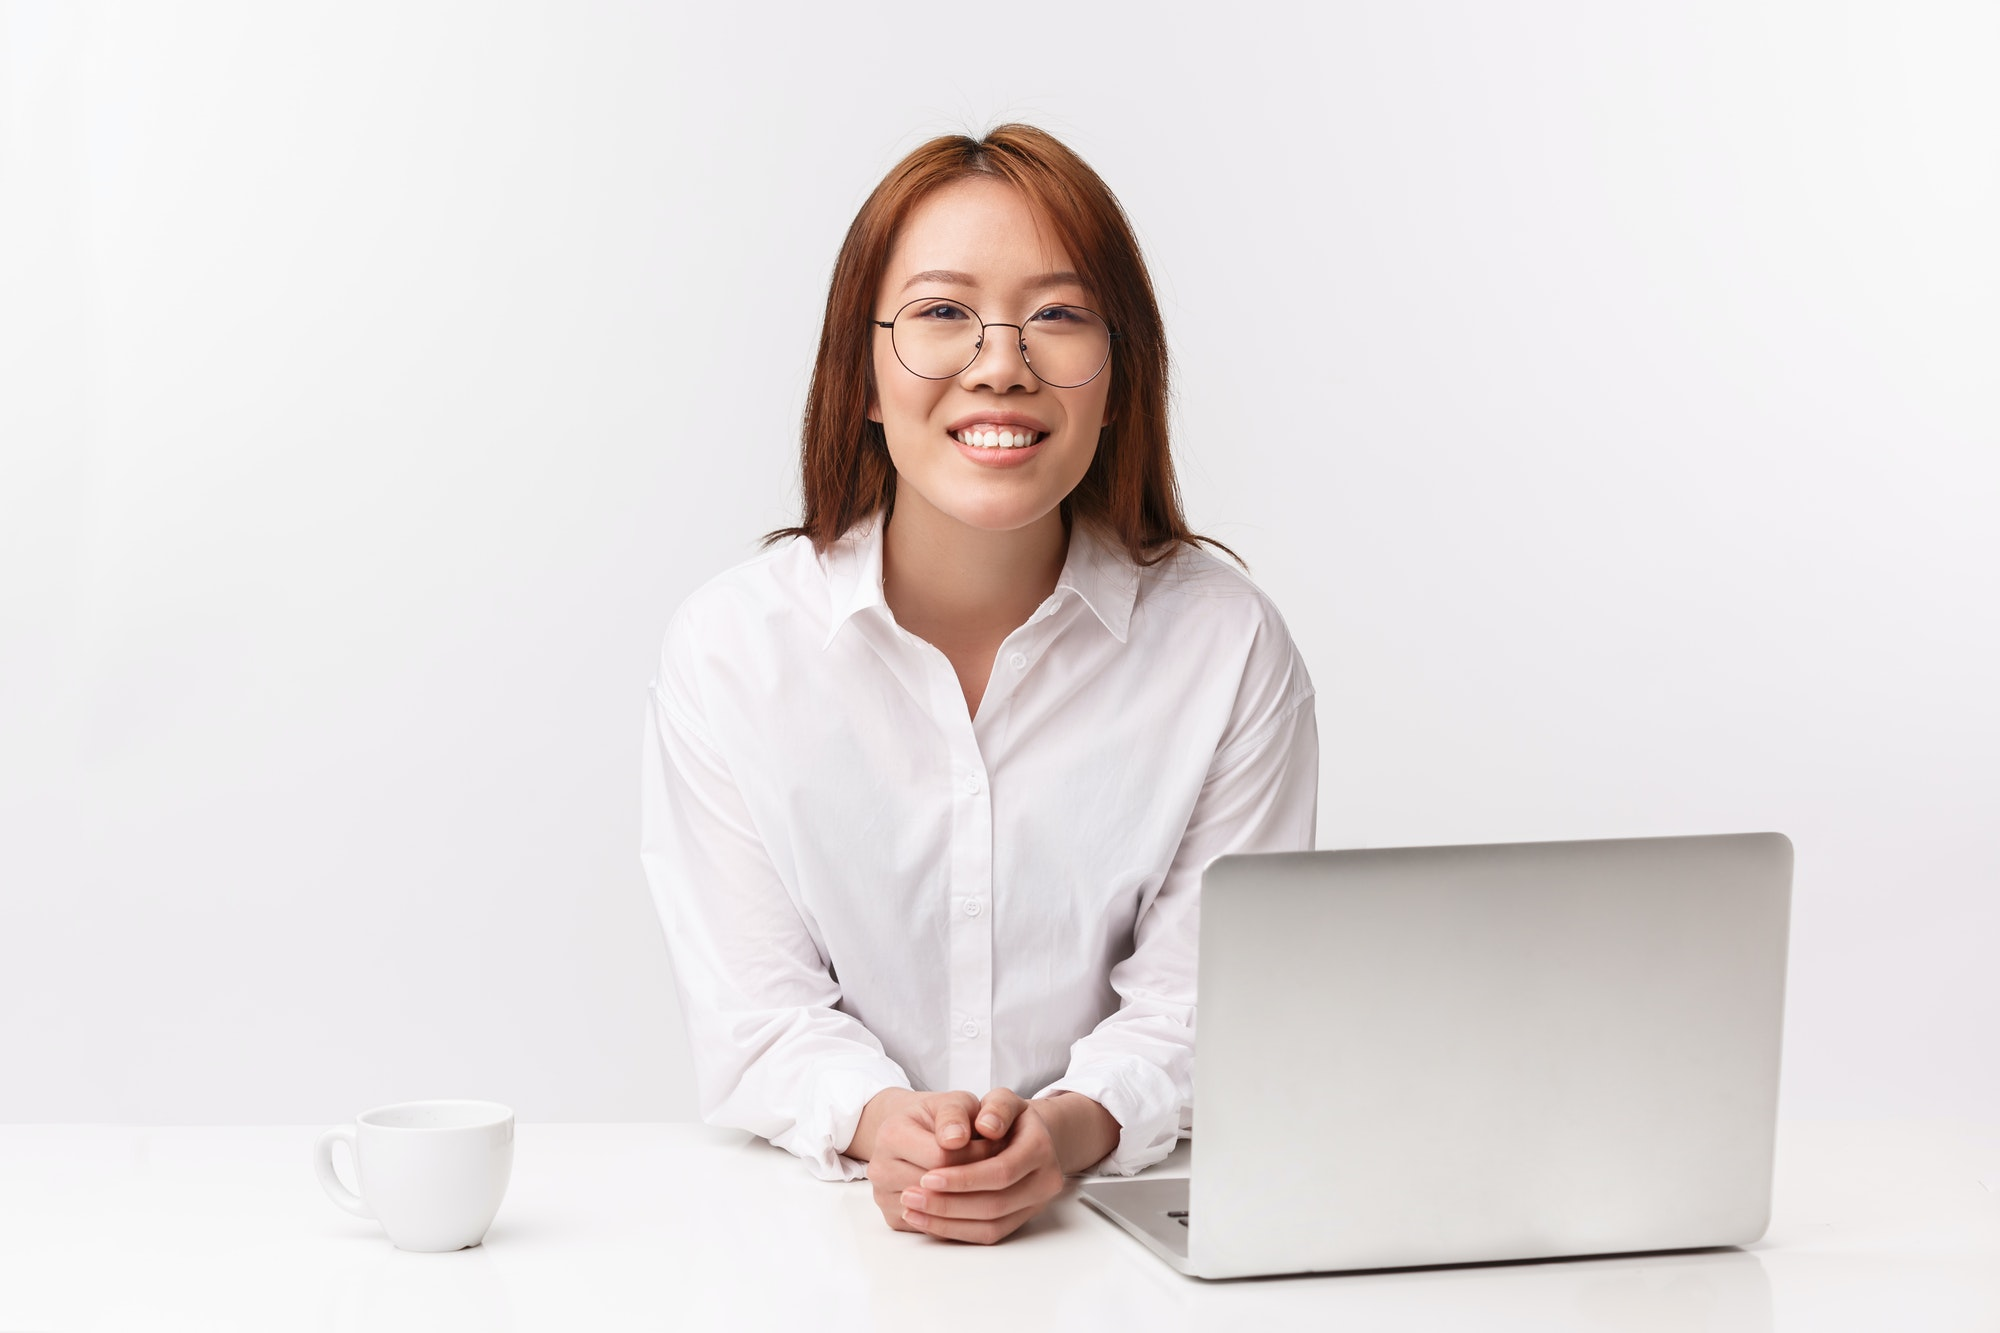 Career, work and women entrepreneurs concept. Close-up portrait of cheerful young businesswoman